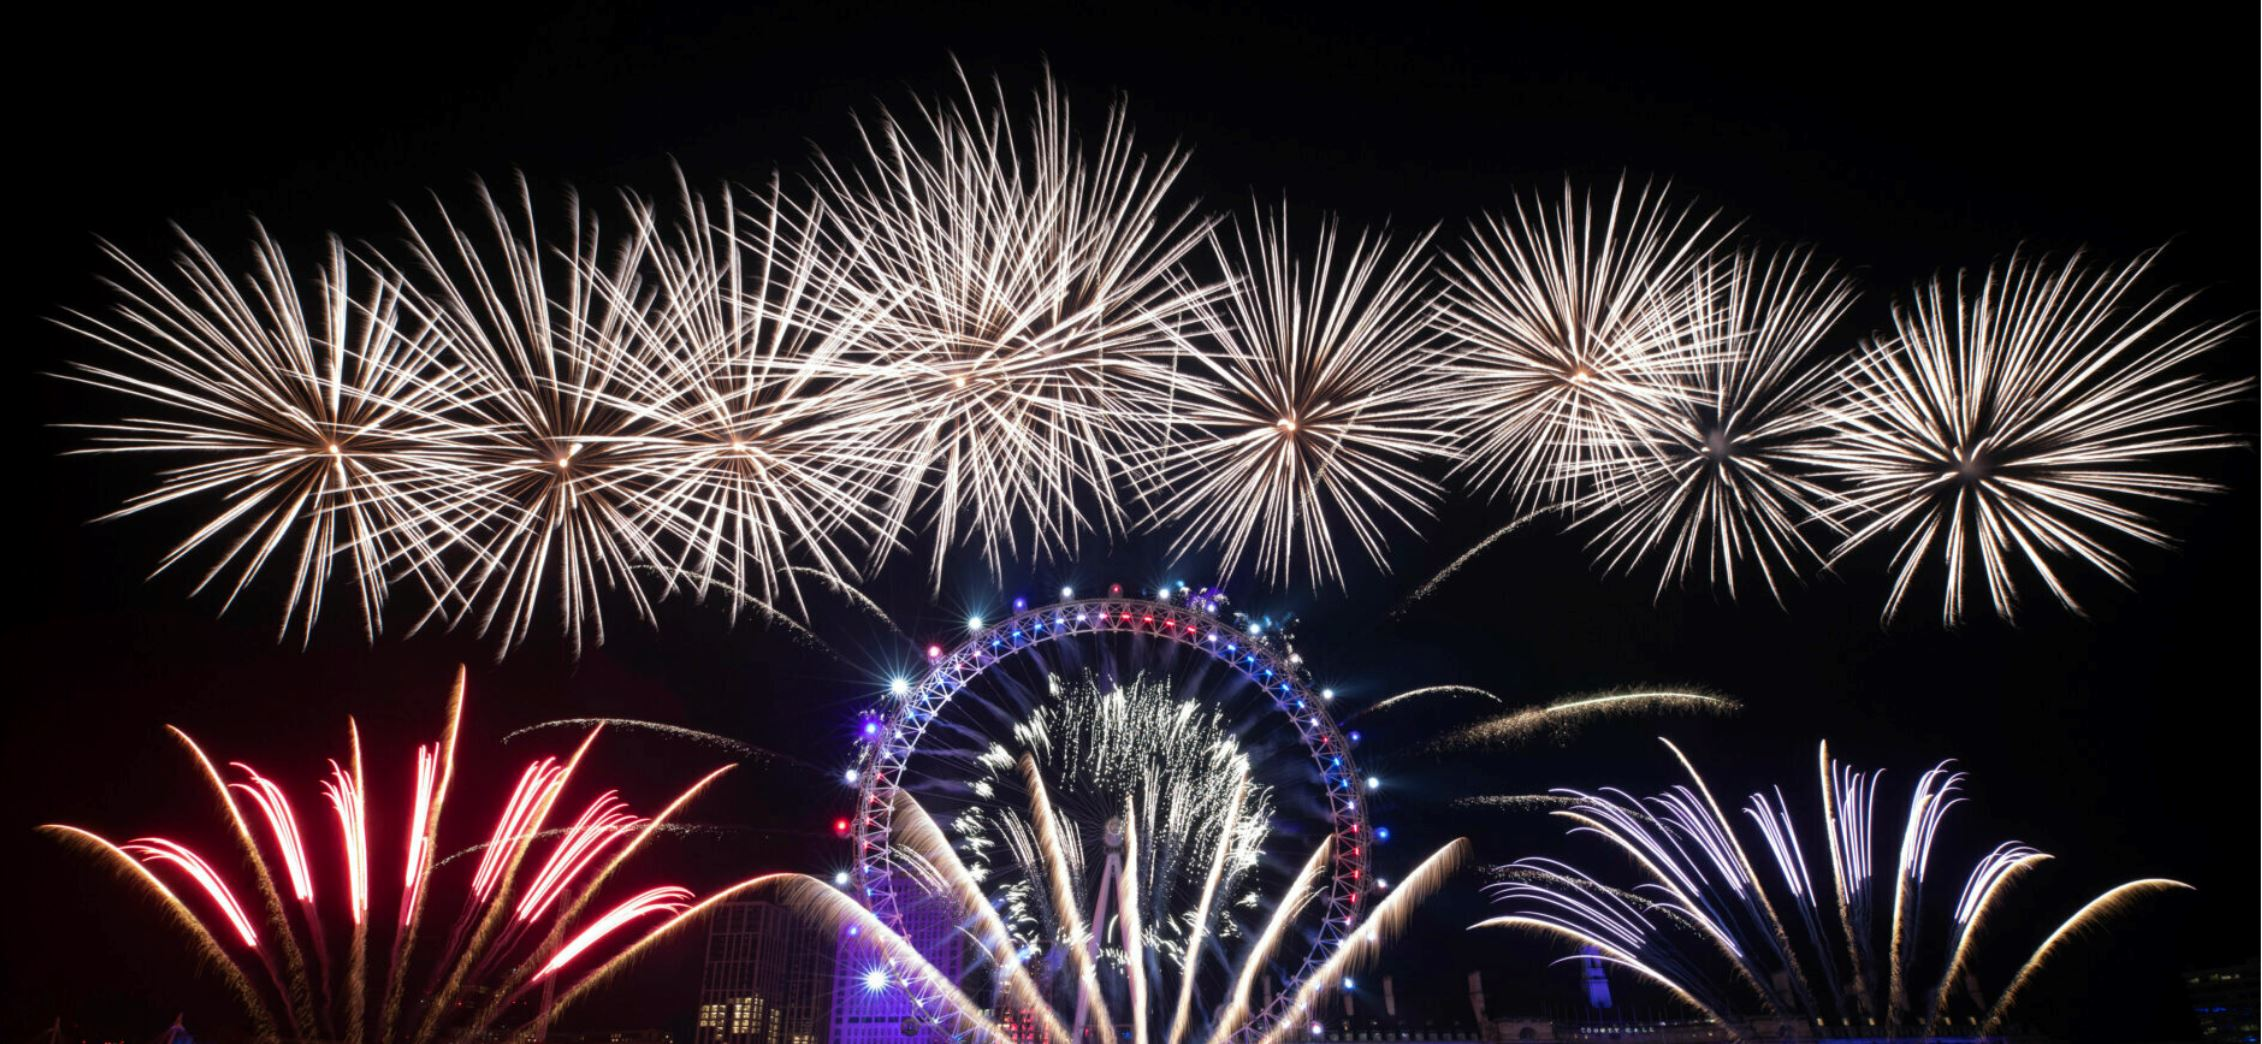 New Year's Day – Jan 1st